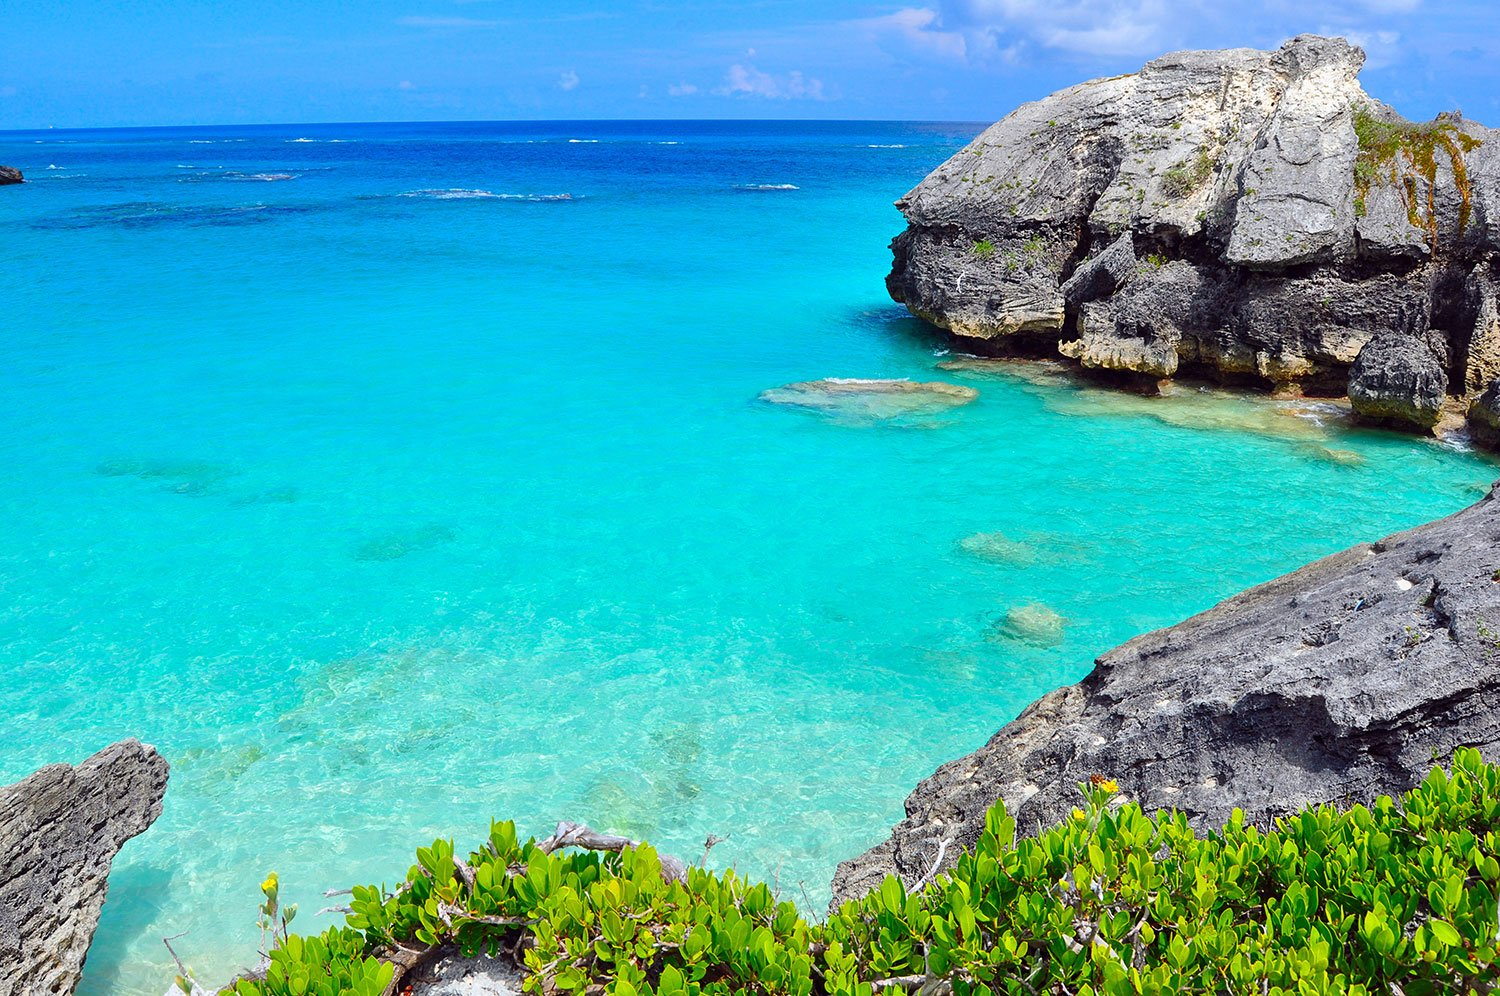 Turquoise water in Bermuda partially enclosed by large rocks